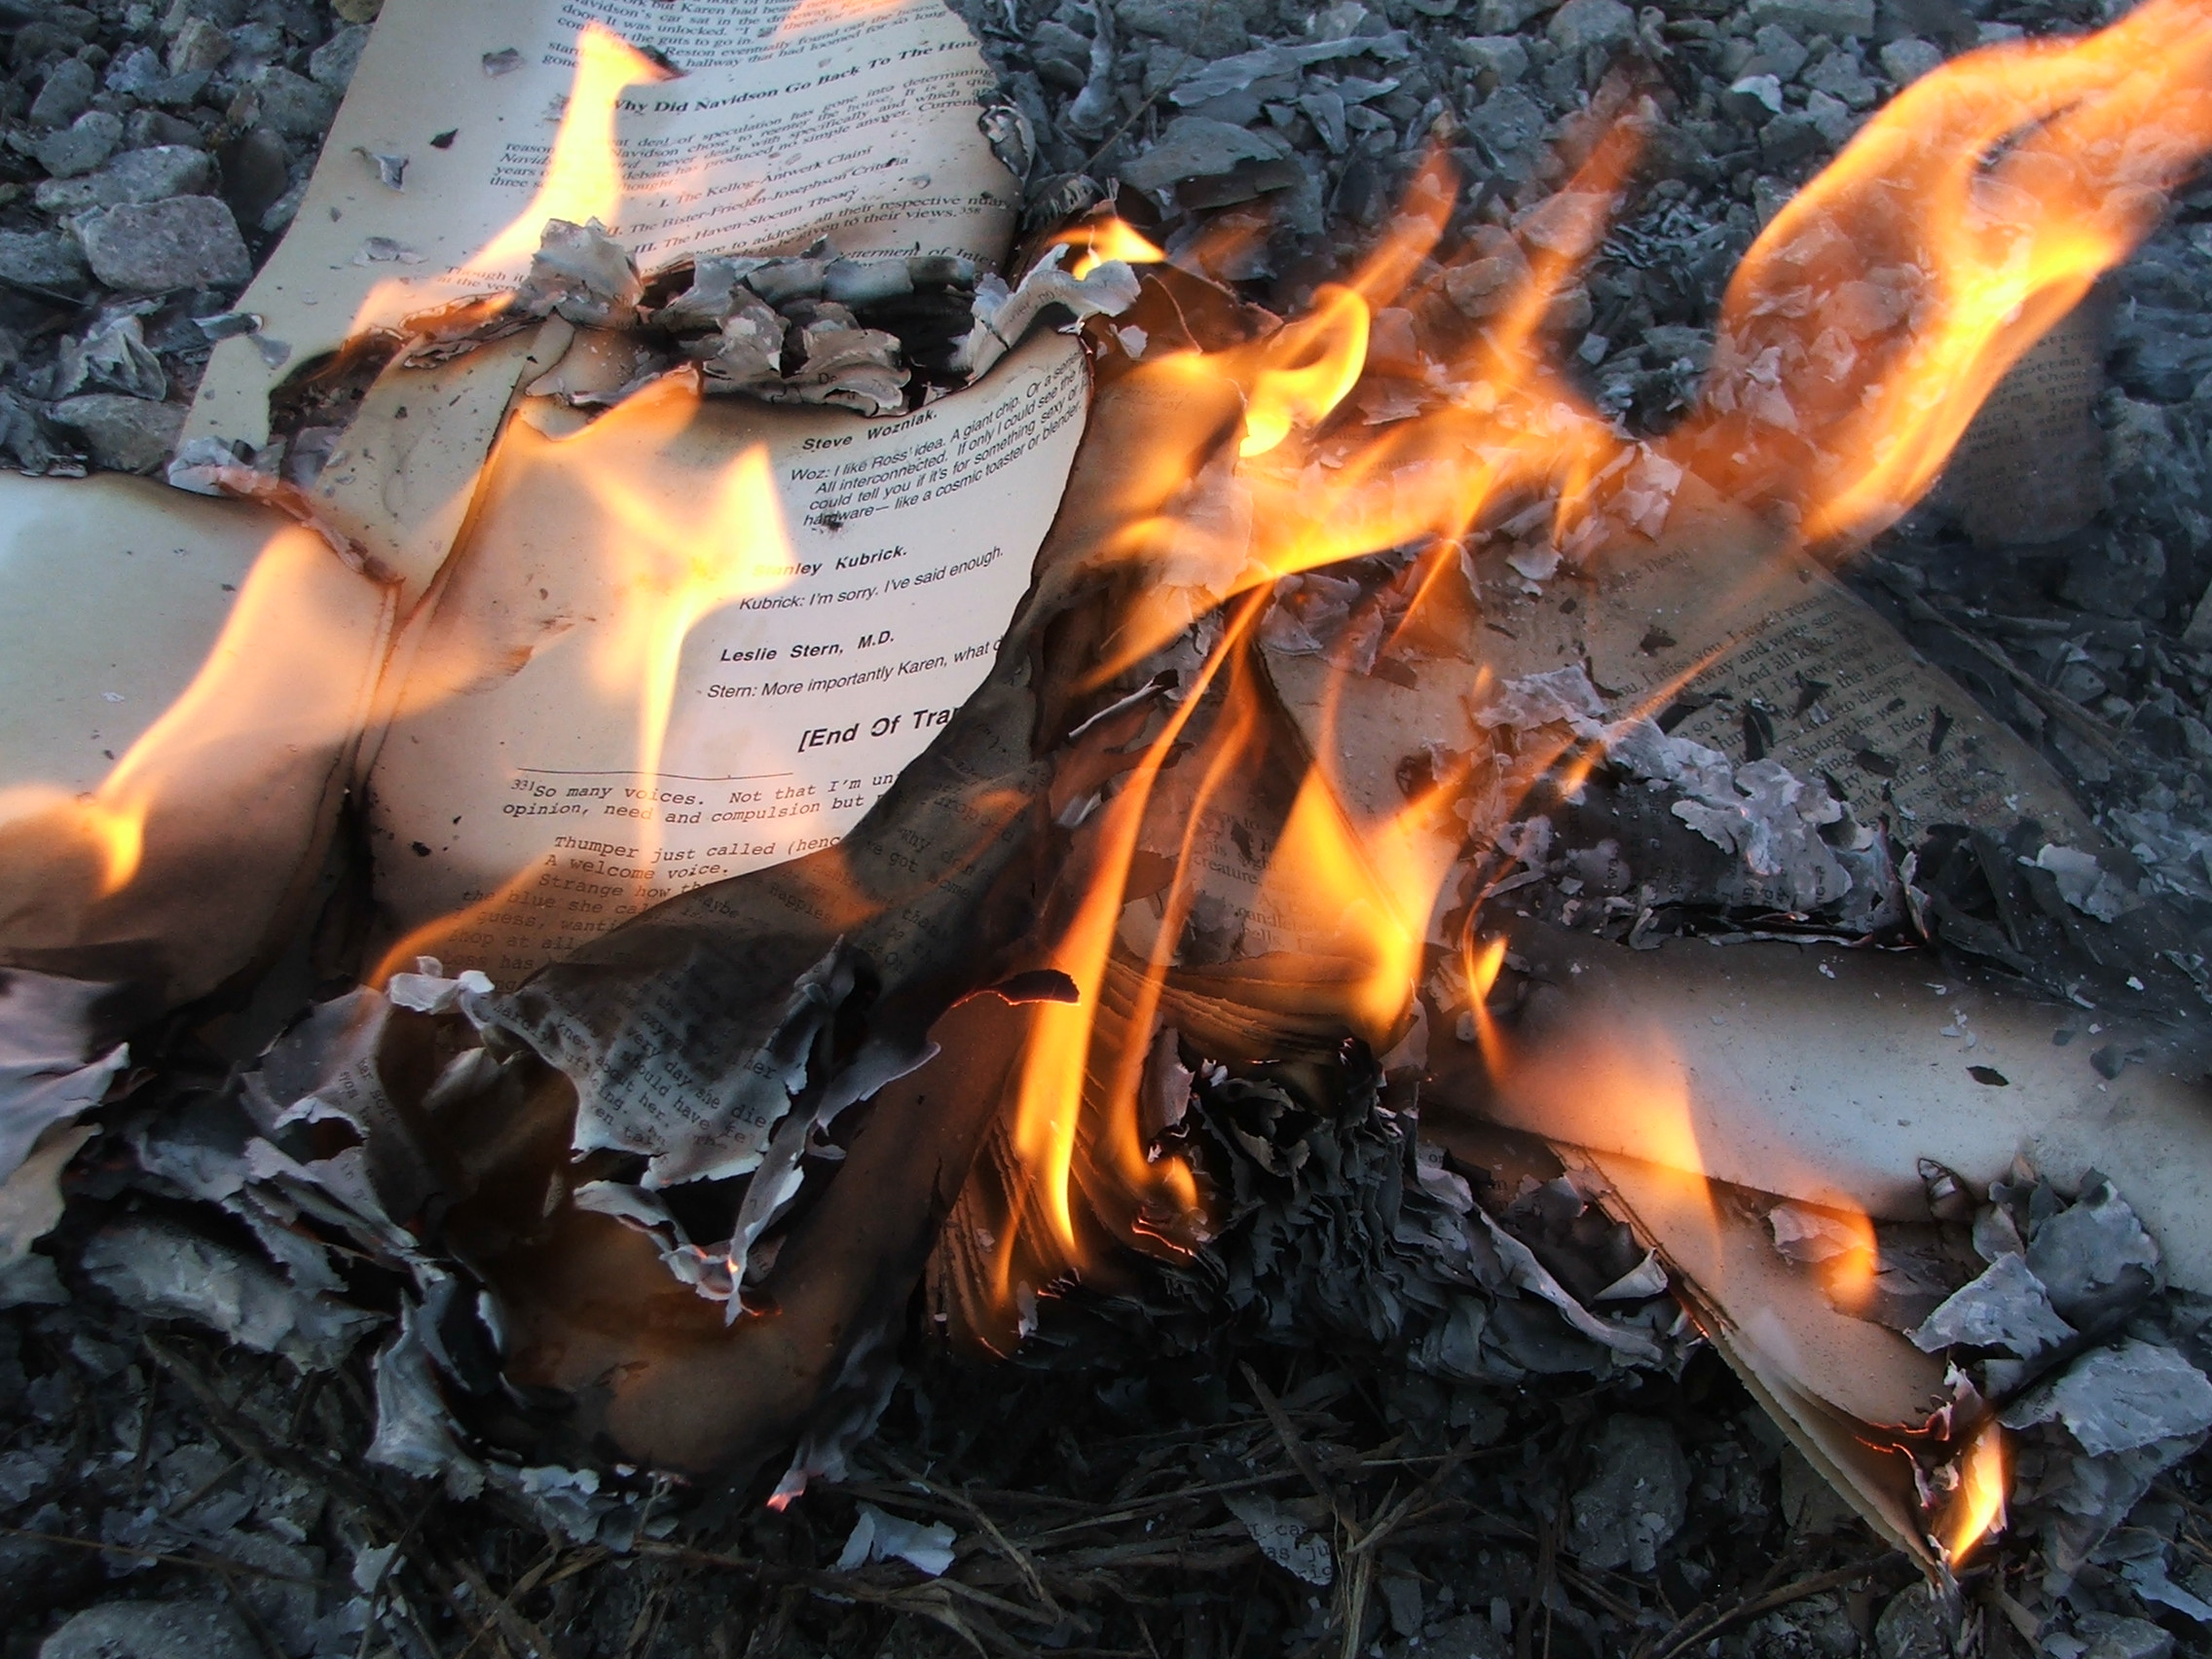 Book pages burning.